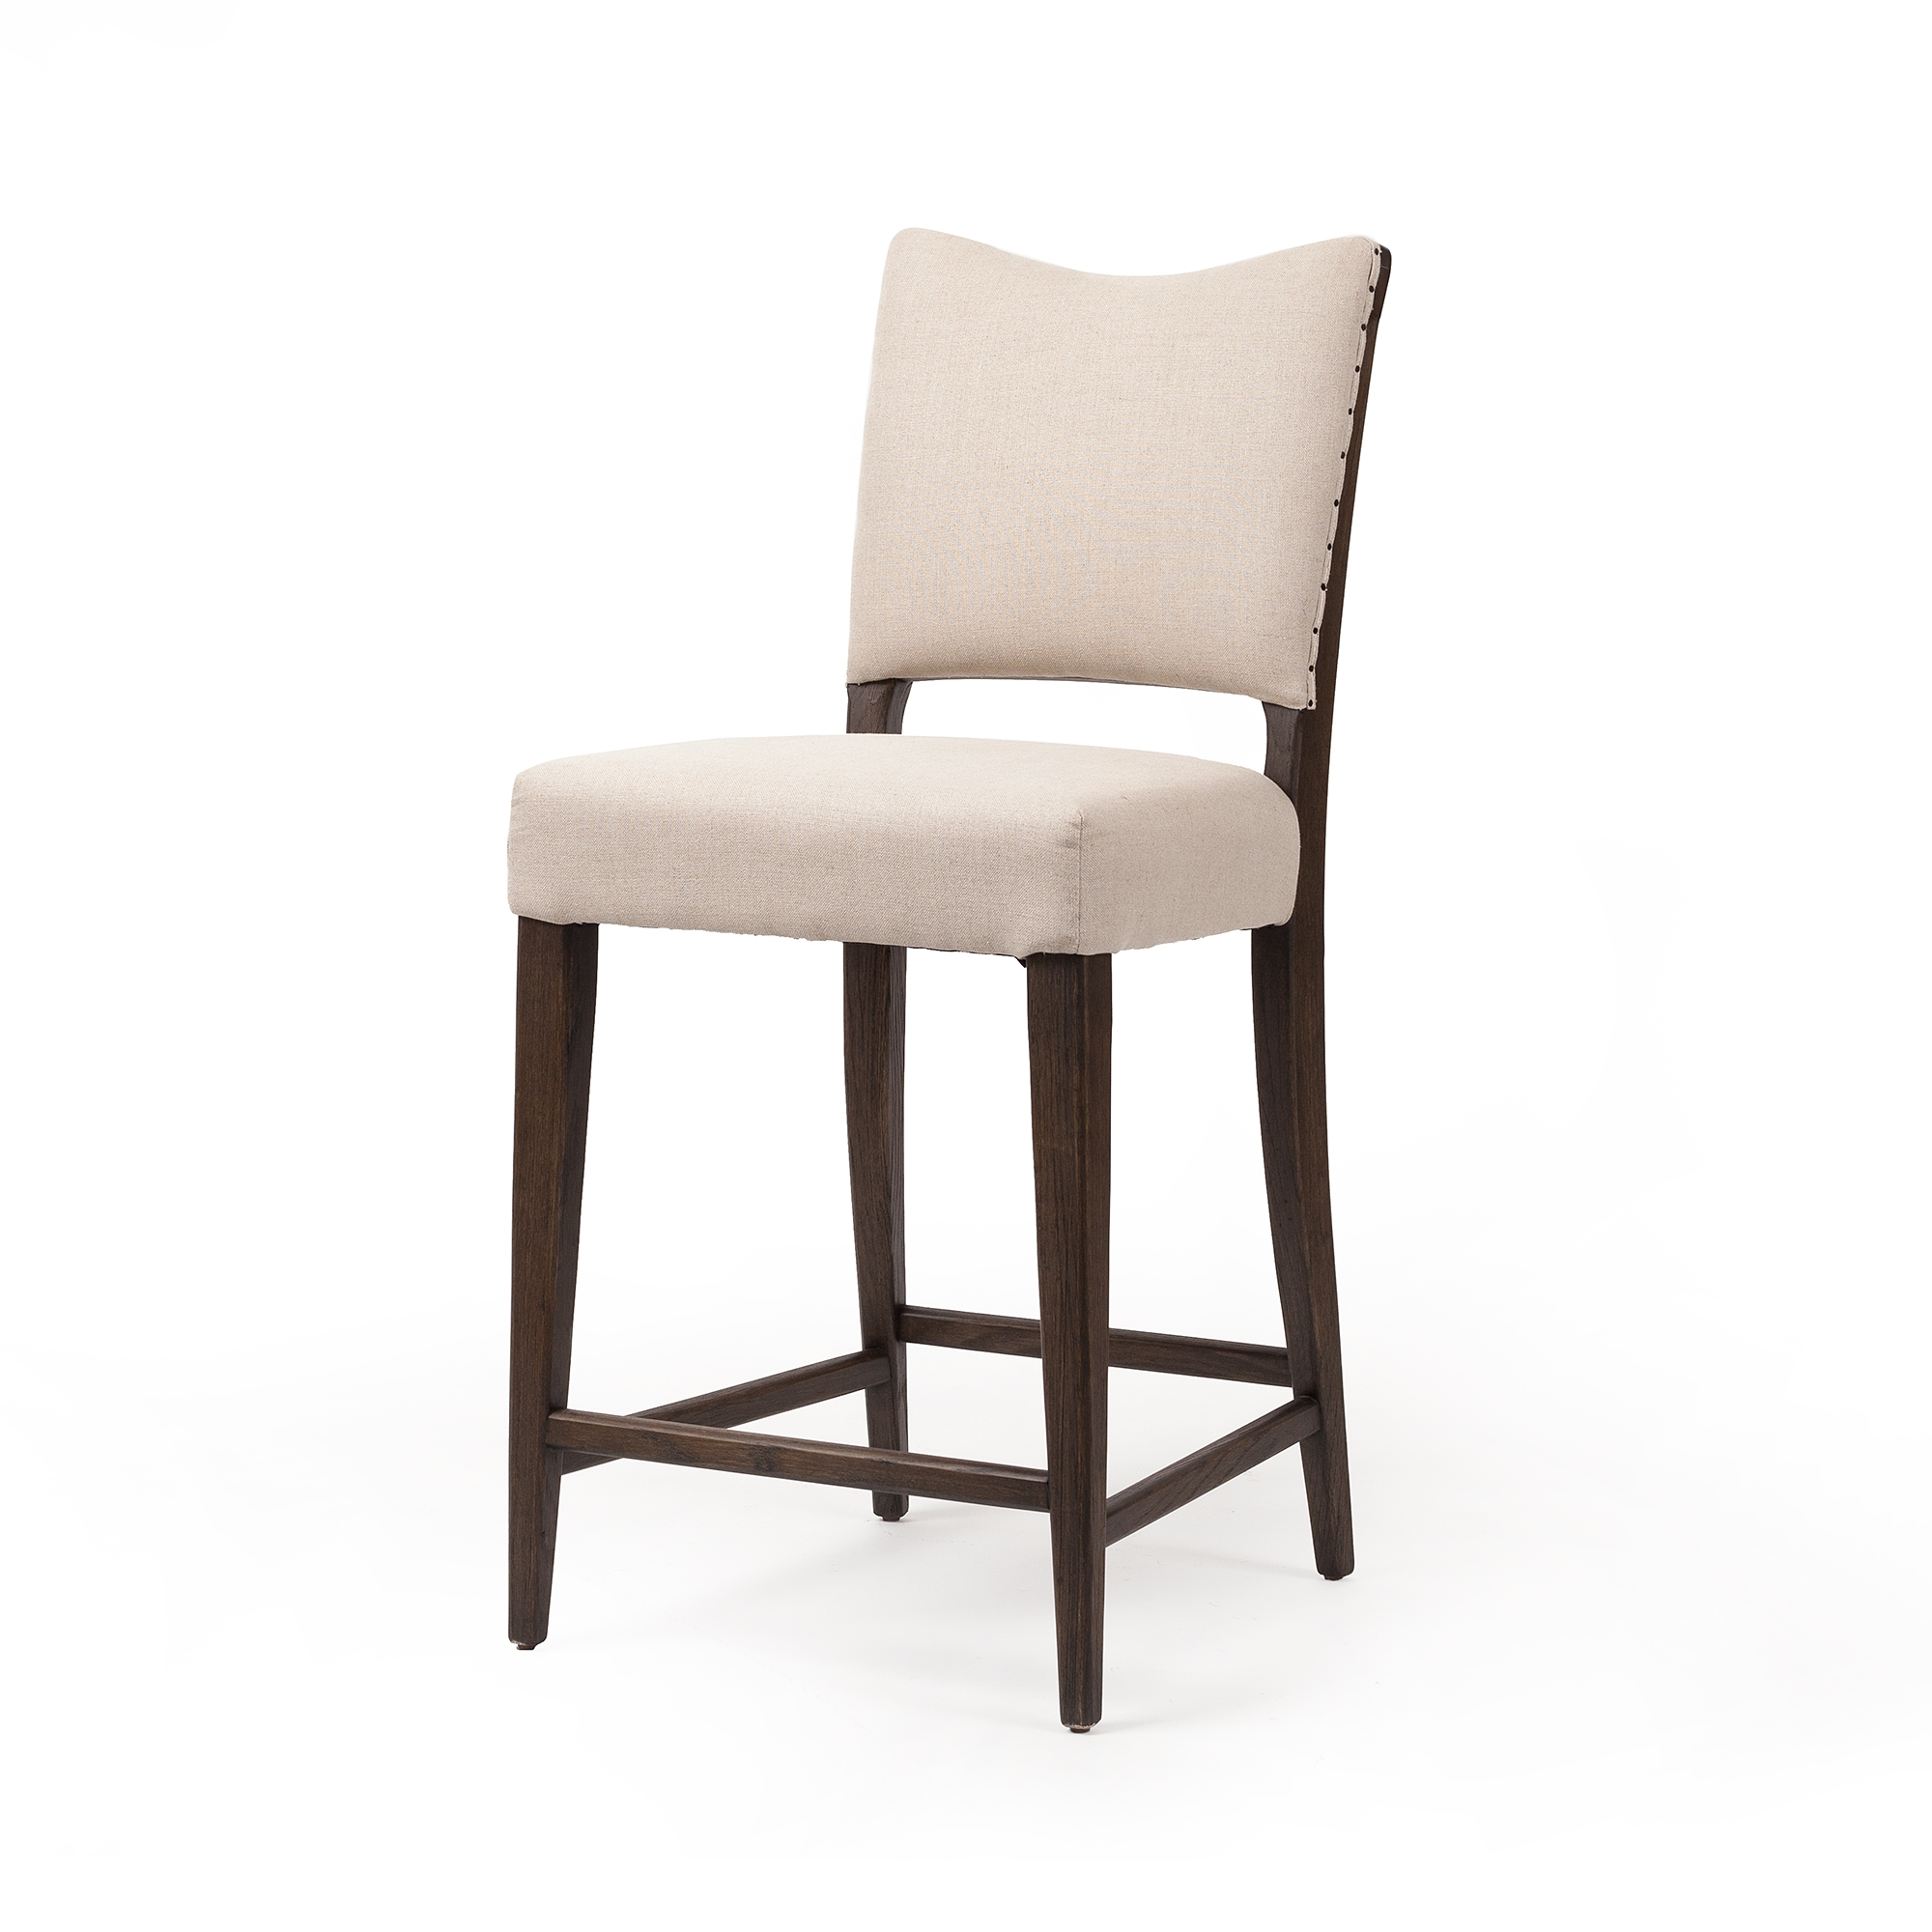 Prime Lennox Counter Stool In Oatmeal Linen Gmtry Best Dining Table And Chair Ideas Images Gmtryco